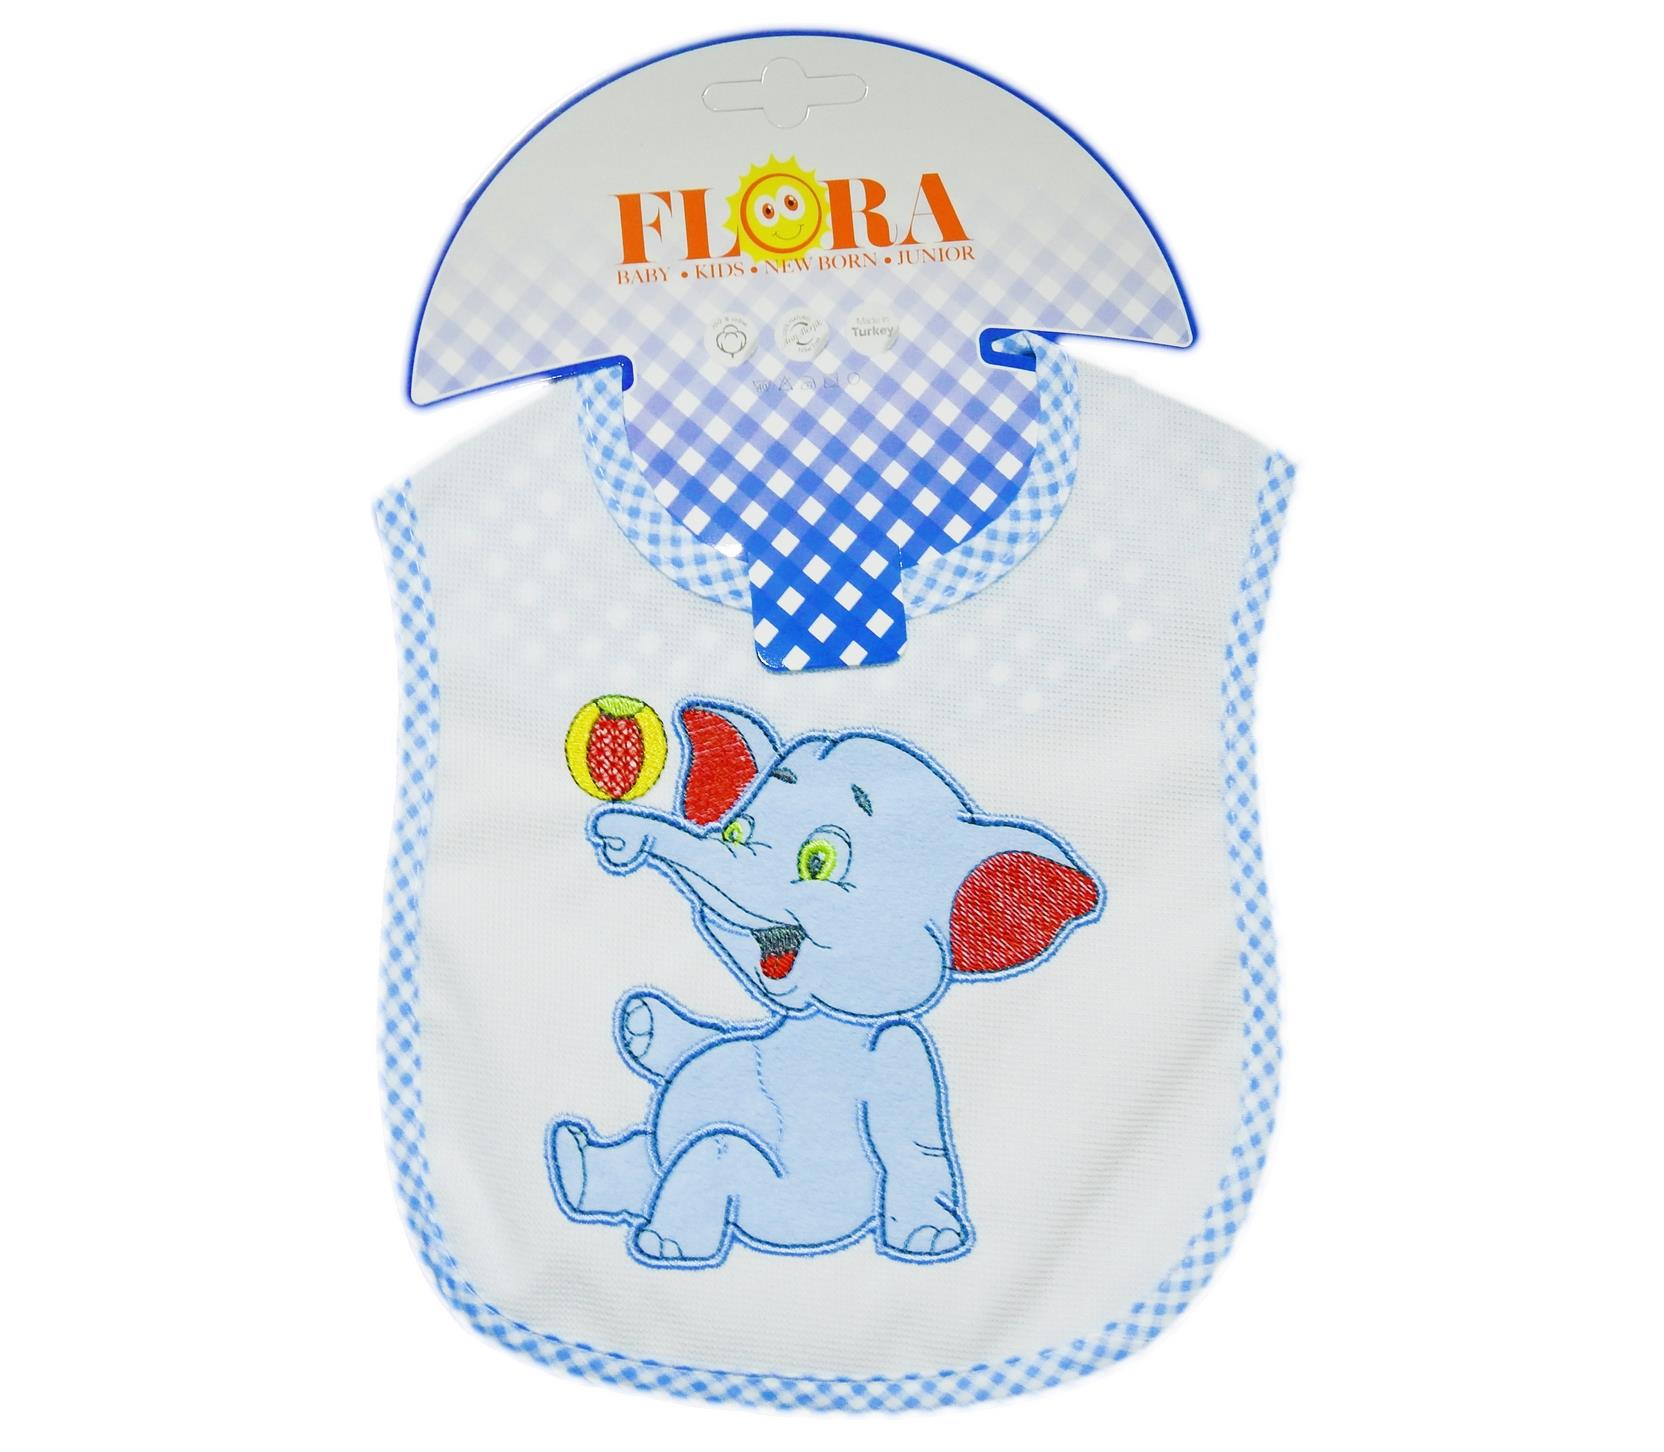 2007 Wholesale elephant printed bibs for baby products 6 pieces in package